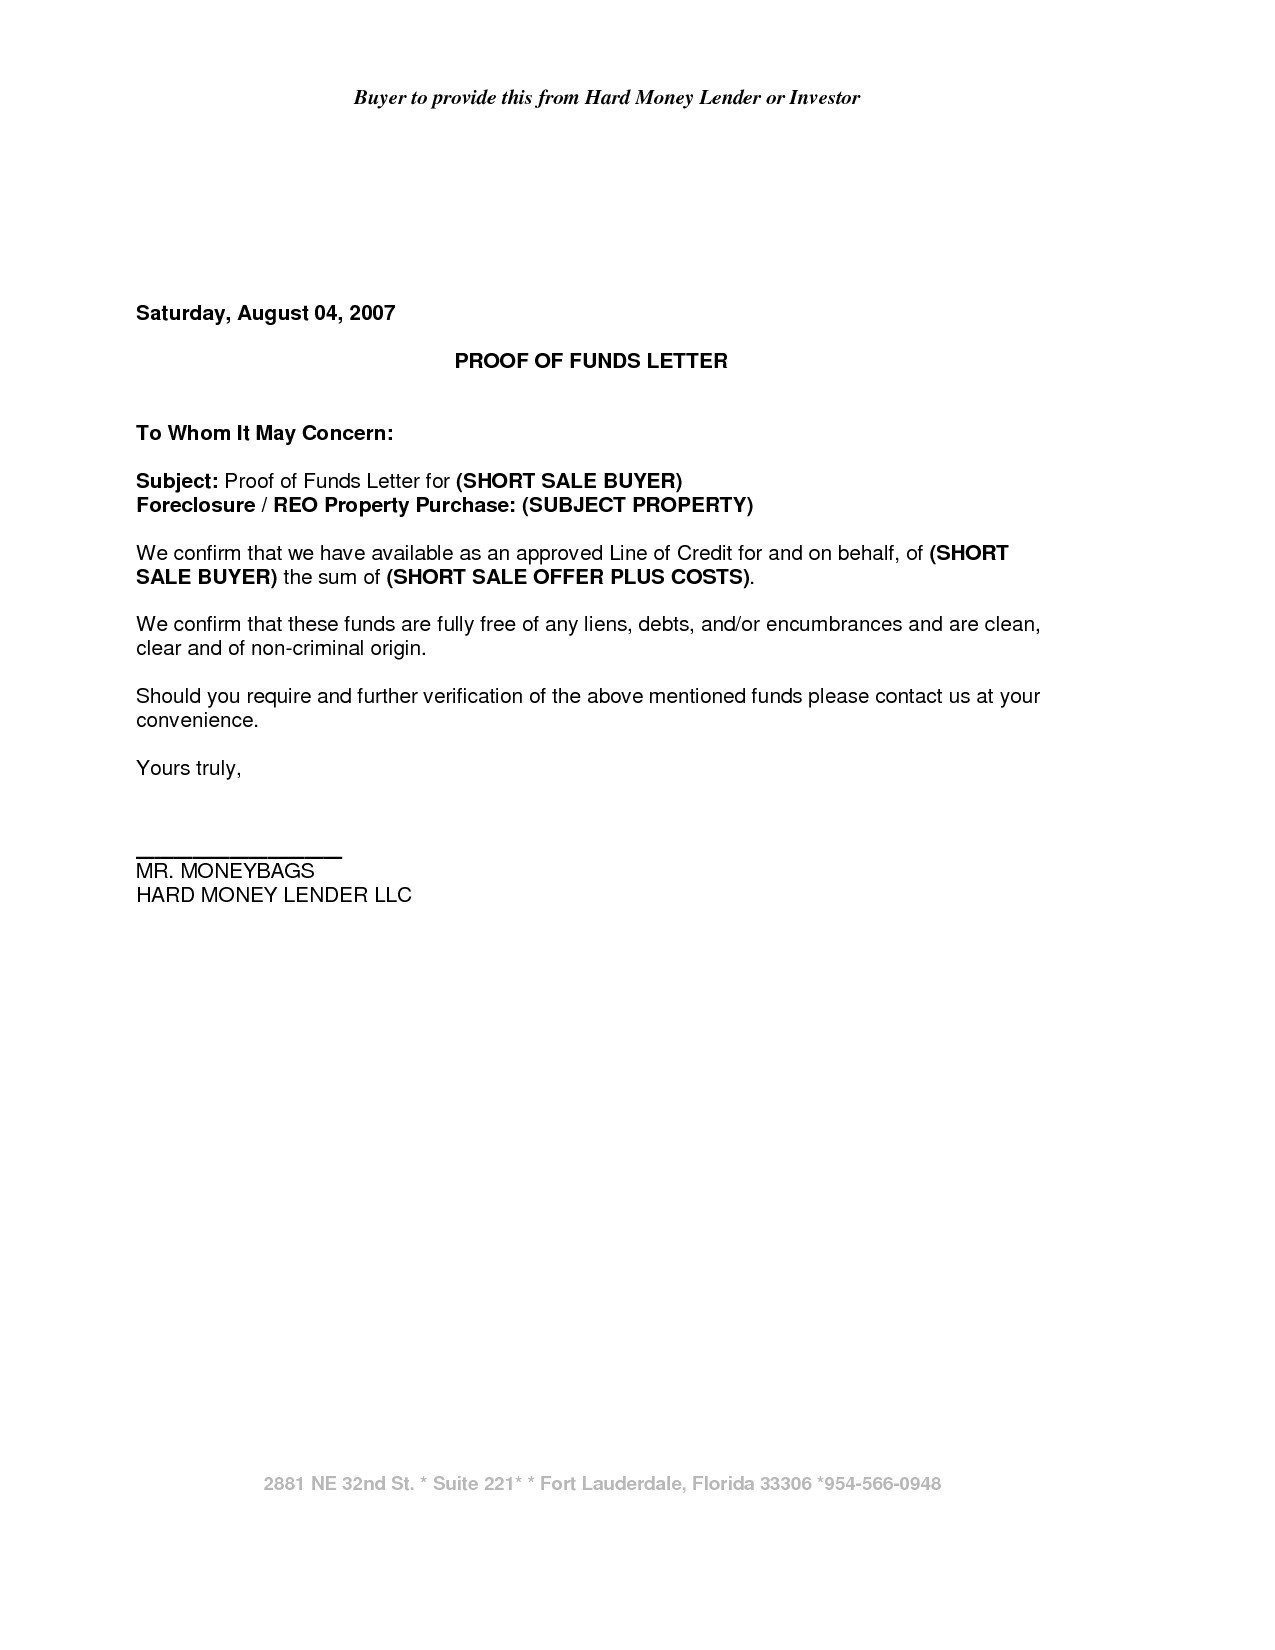 Proof Of Funds Letter Template - Proof Funds Letter Exceptional Free Proof Funds Letter